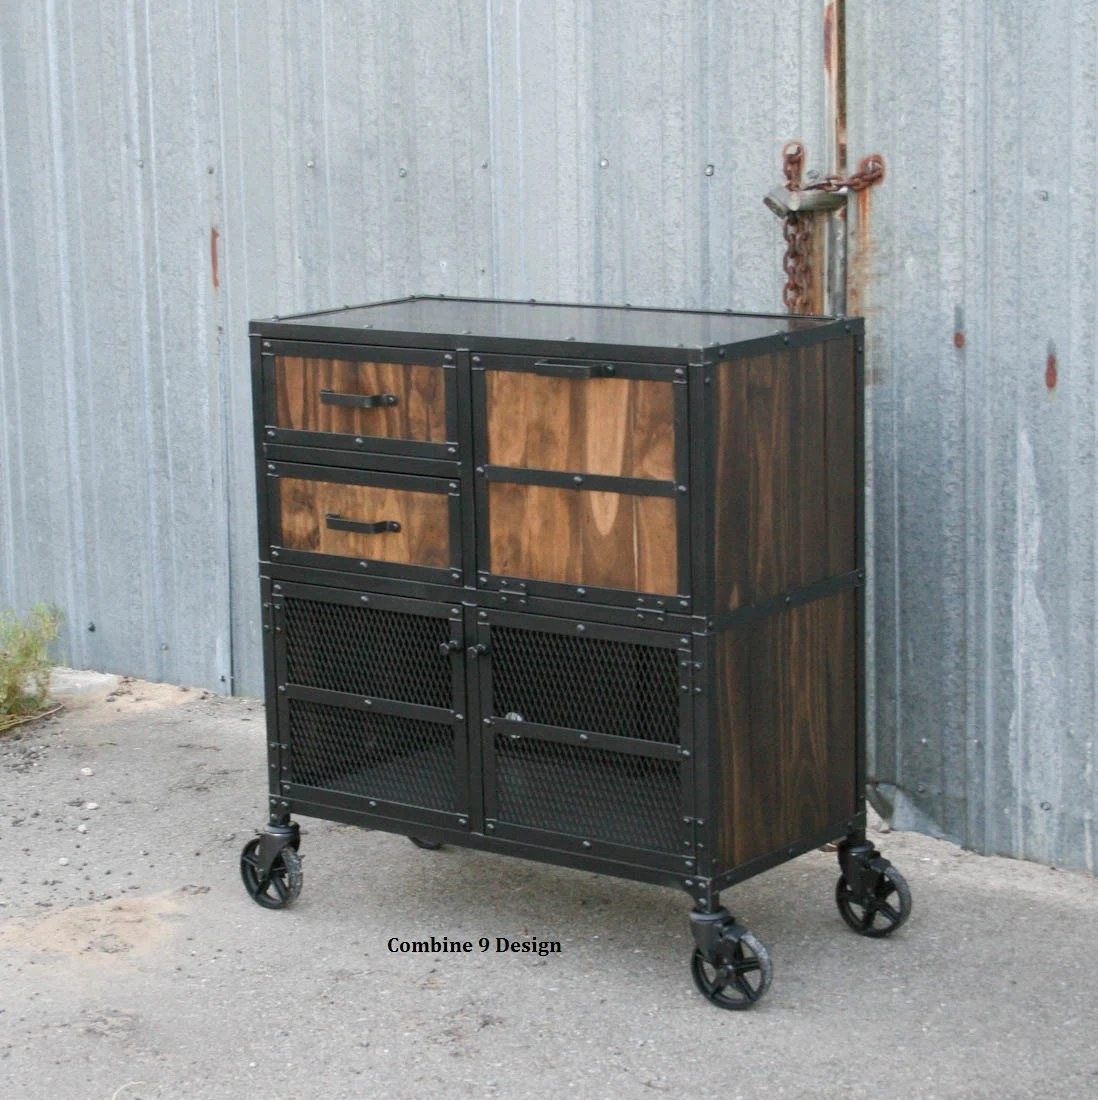 Salon Industrial Modern Industrial Salon Workstation Rustic Cart Reclaimed Wood And Steel Barber Station Mobile Storage Cabinet Custom Options Avail